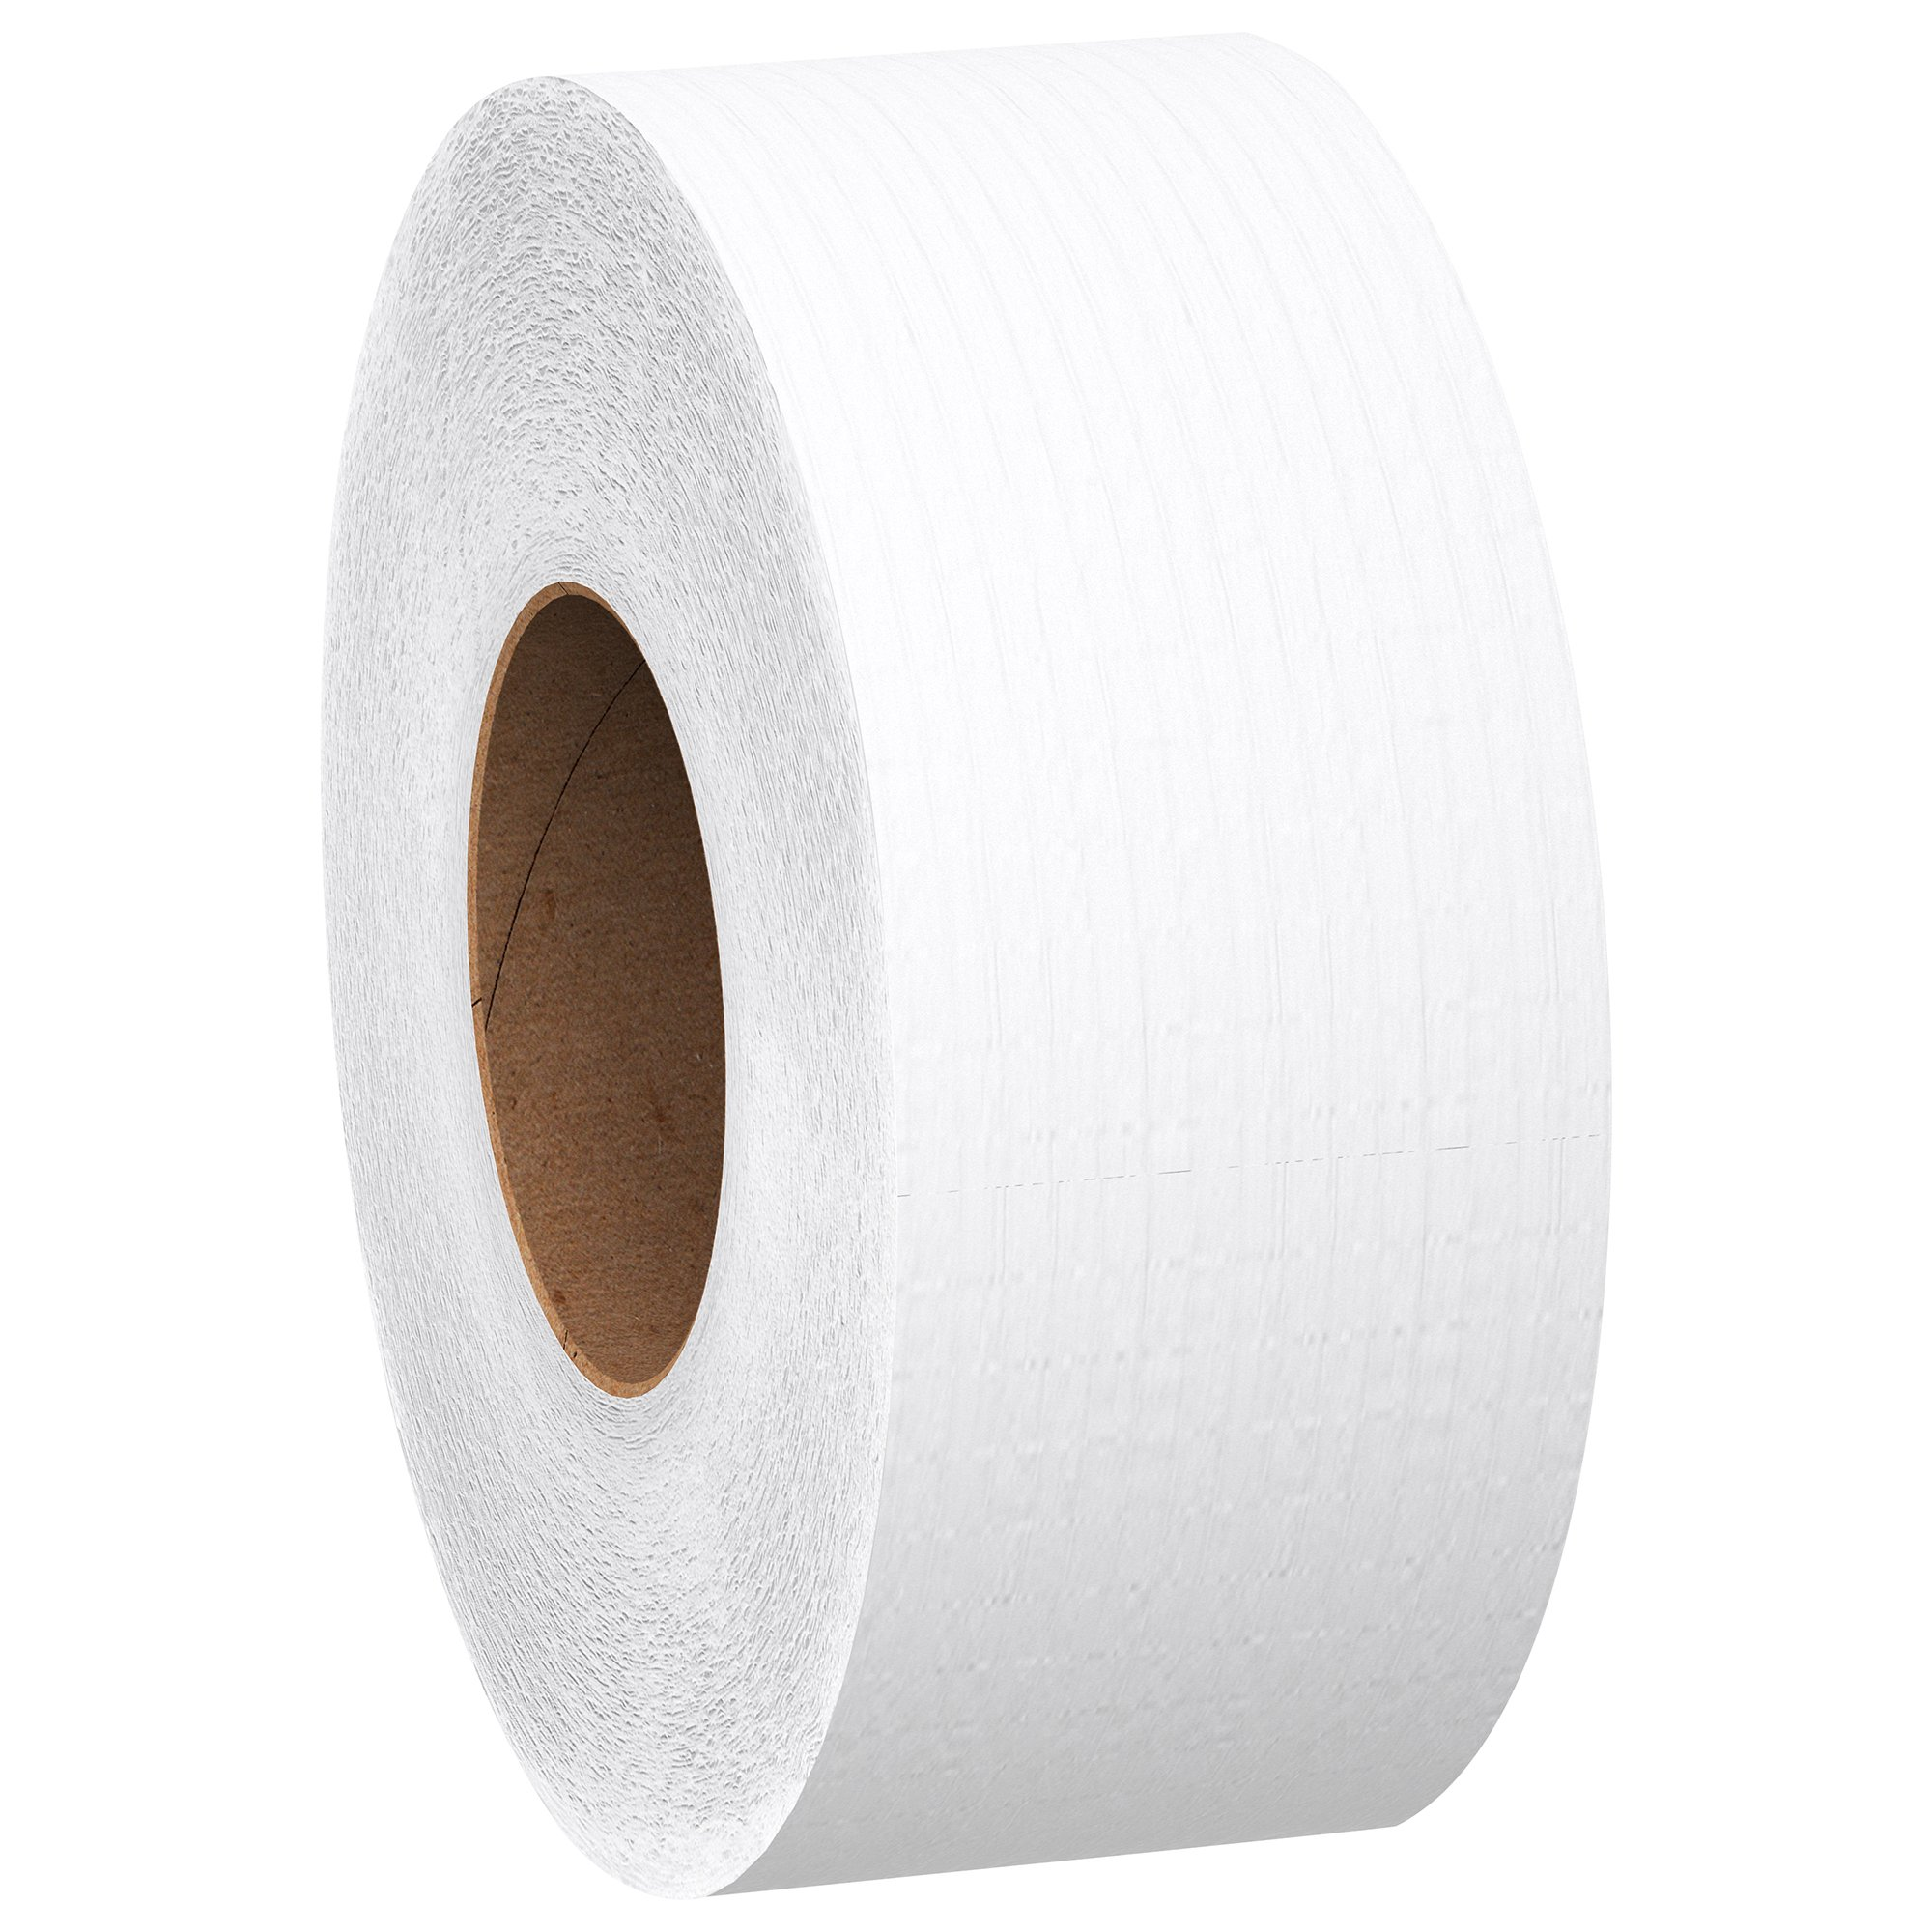 Scott Essential Jumbo Roll (JRT) Commercial Toilet Paper (07202), 1-PLY, White, 6 Rolls/Case, 4,000' / Roll